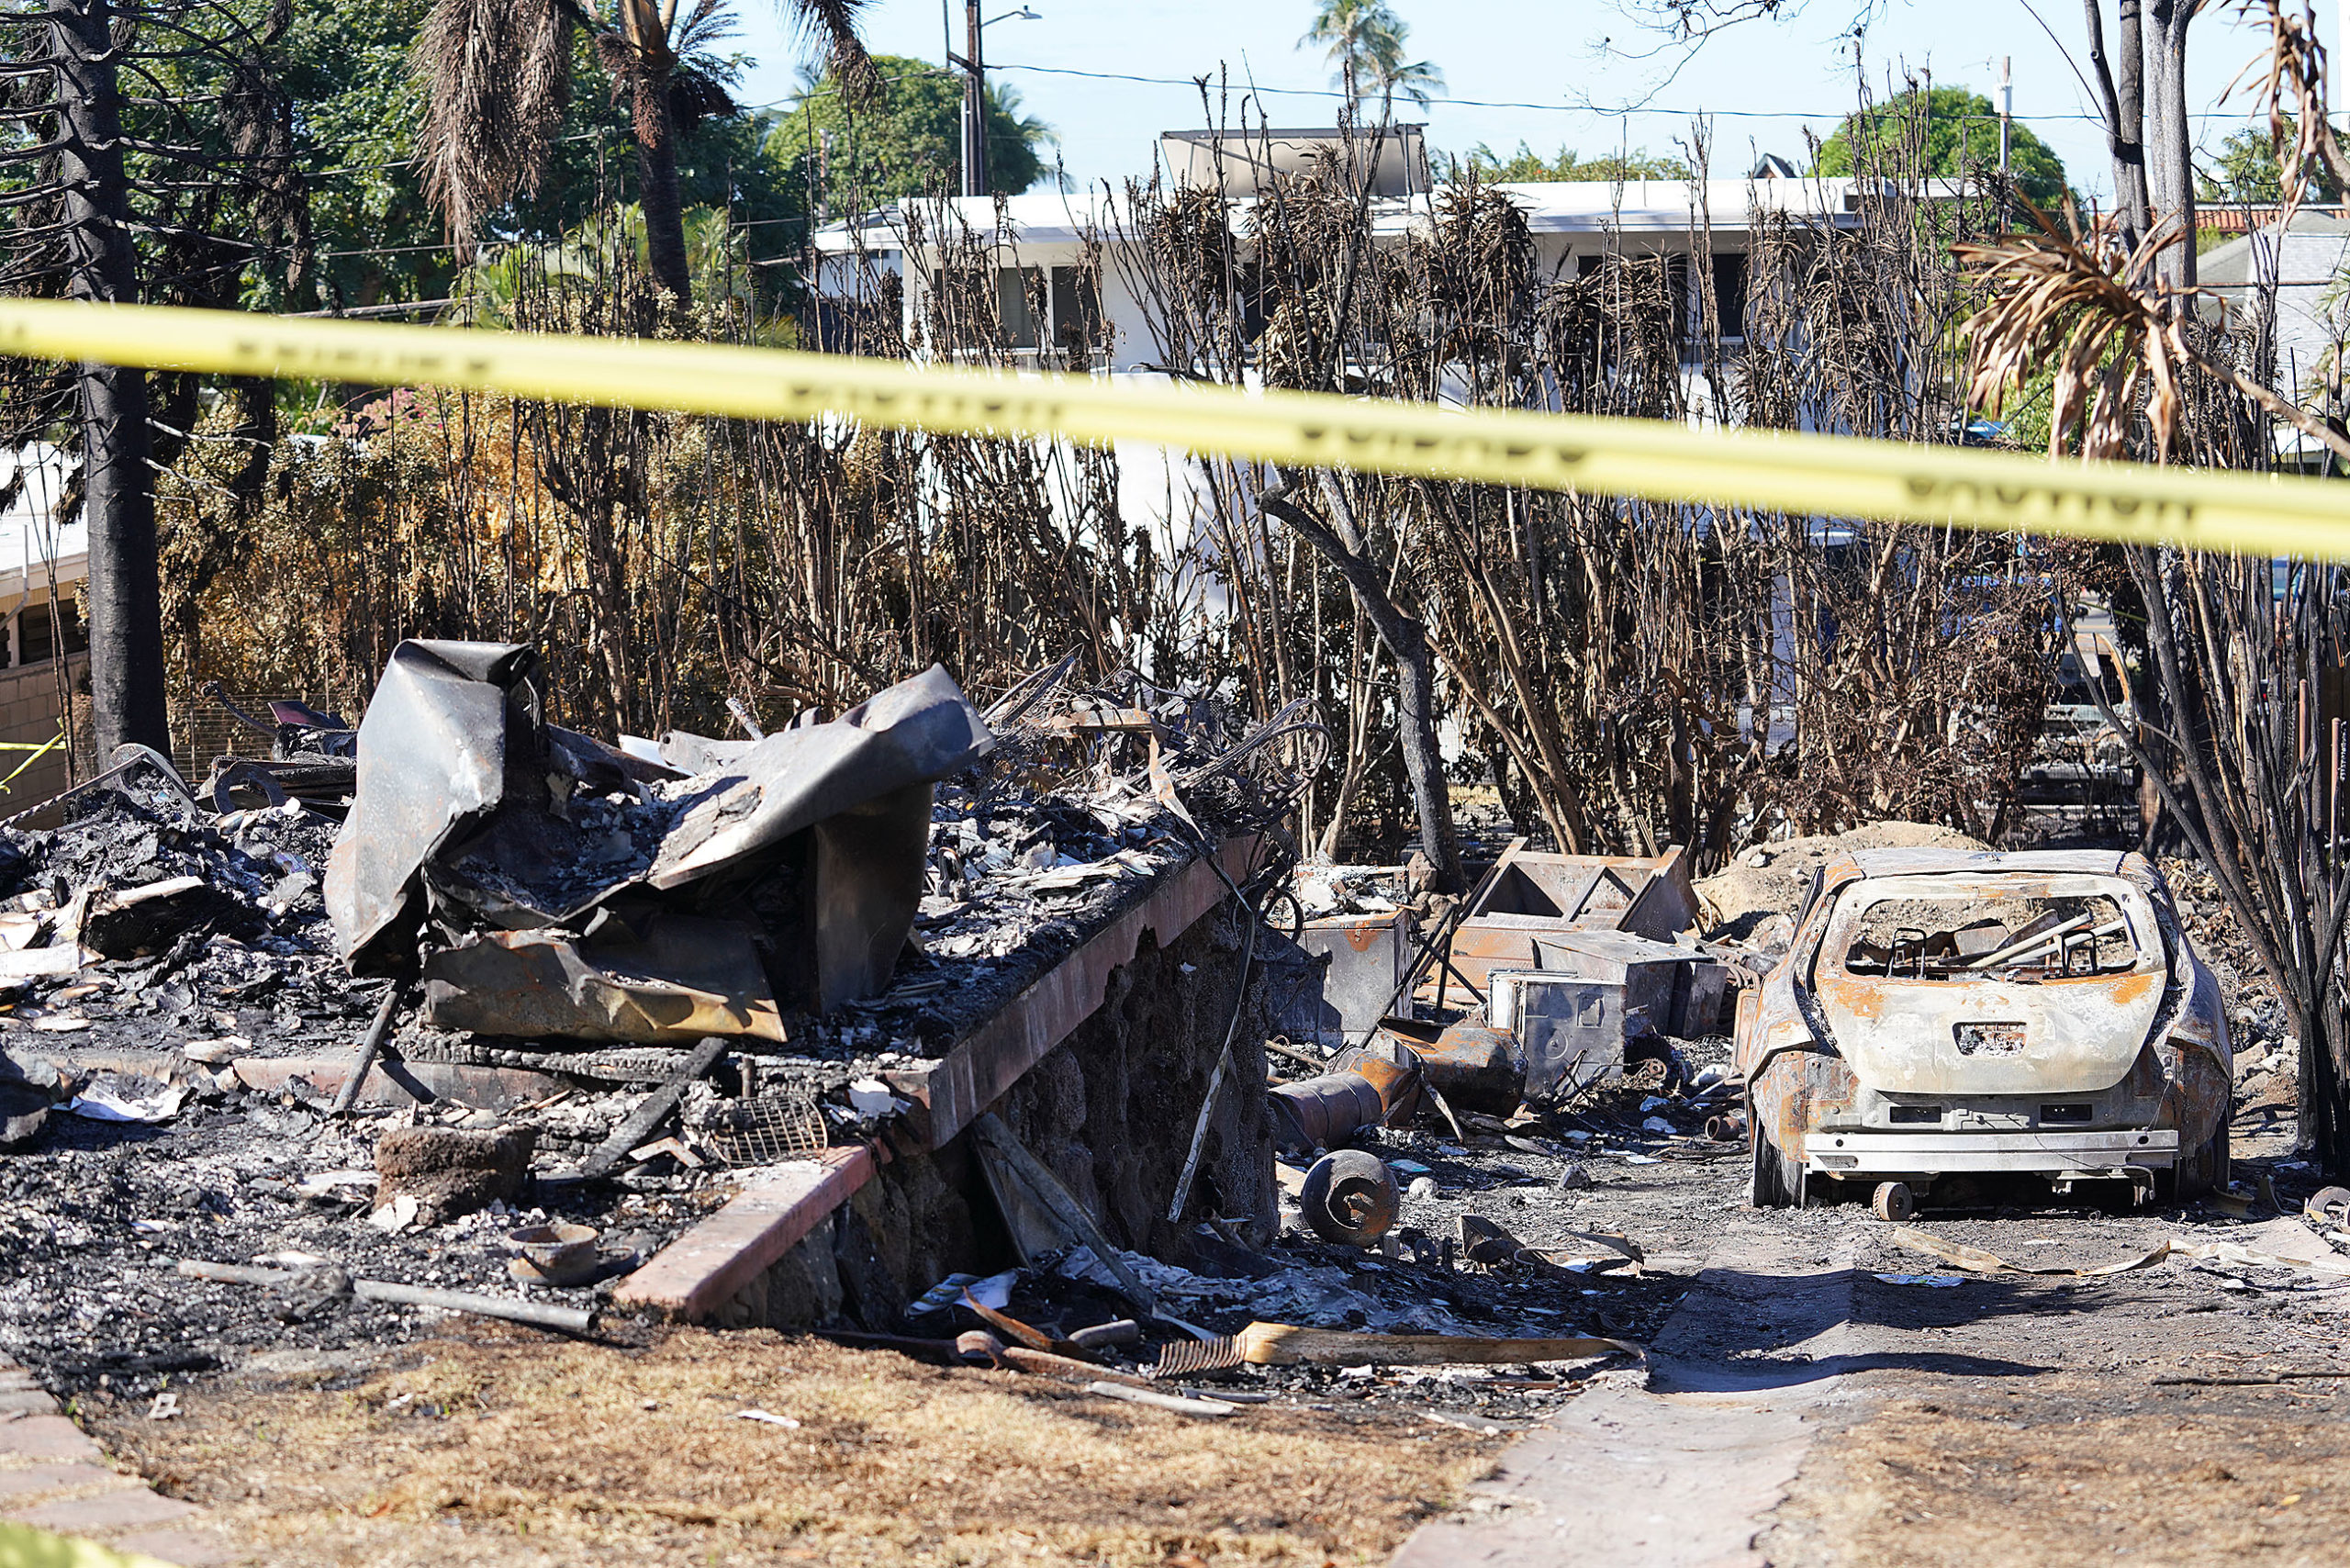 <p>Several homes and cars were destroyed in the Hibiscus Drive incident. The suspect's landlord, Lois Cain, was also killed. She had let him live there for free for years but was going through eviction proceedings at the time.</p>